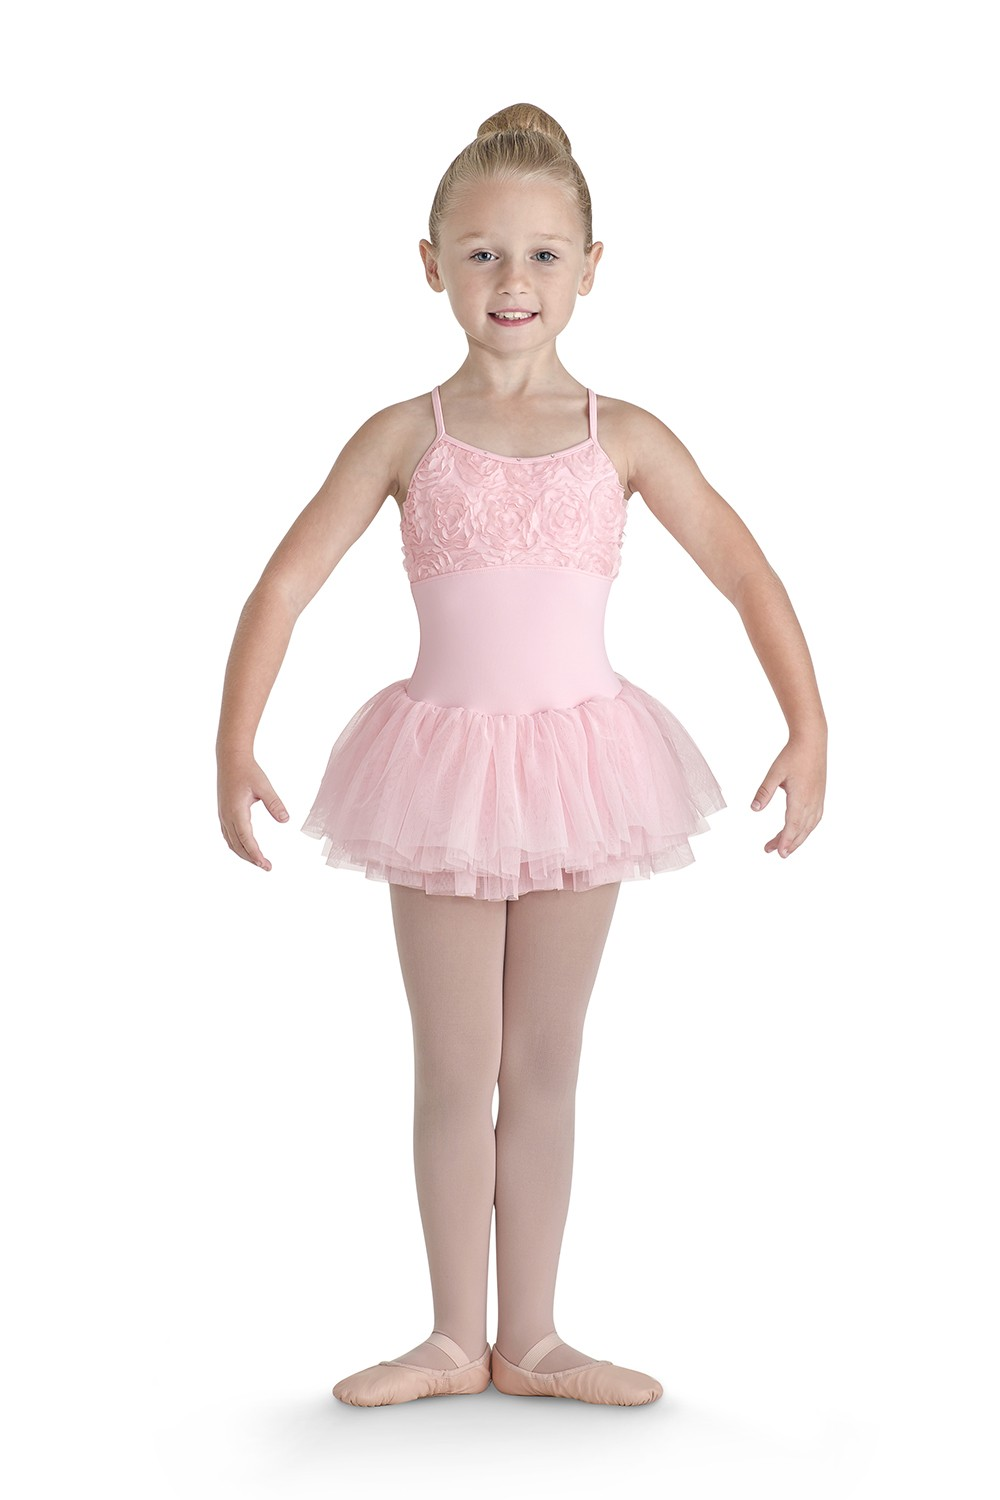 Flower Front X Back Tutu Children's Dance Leotards